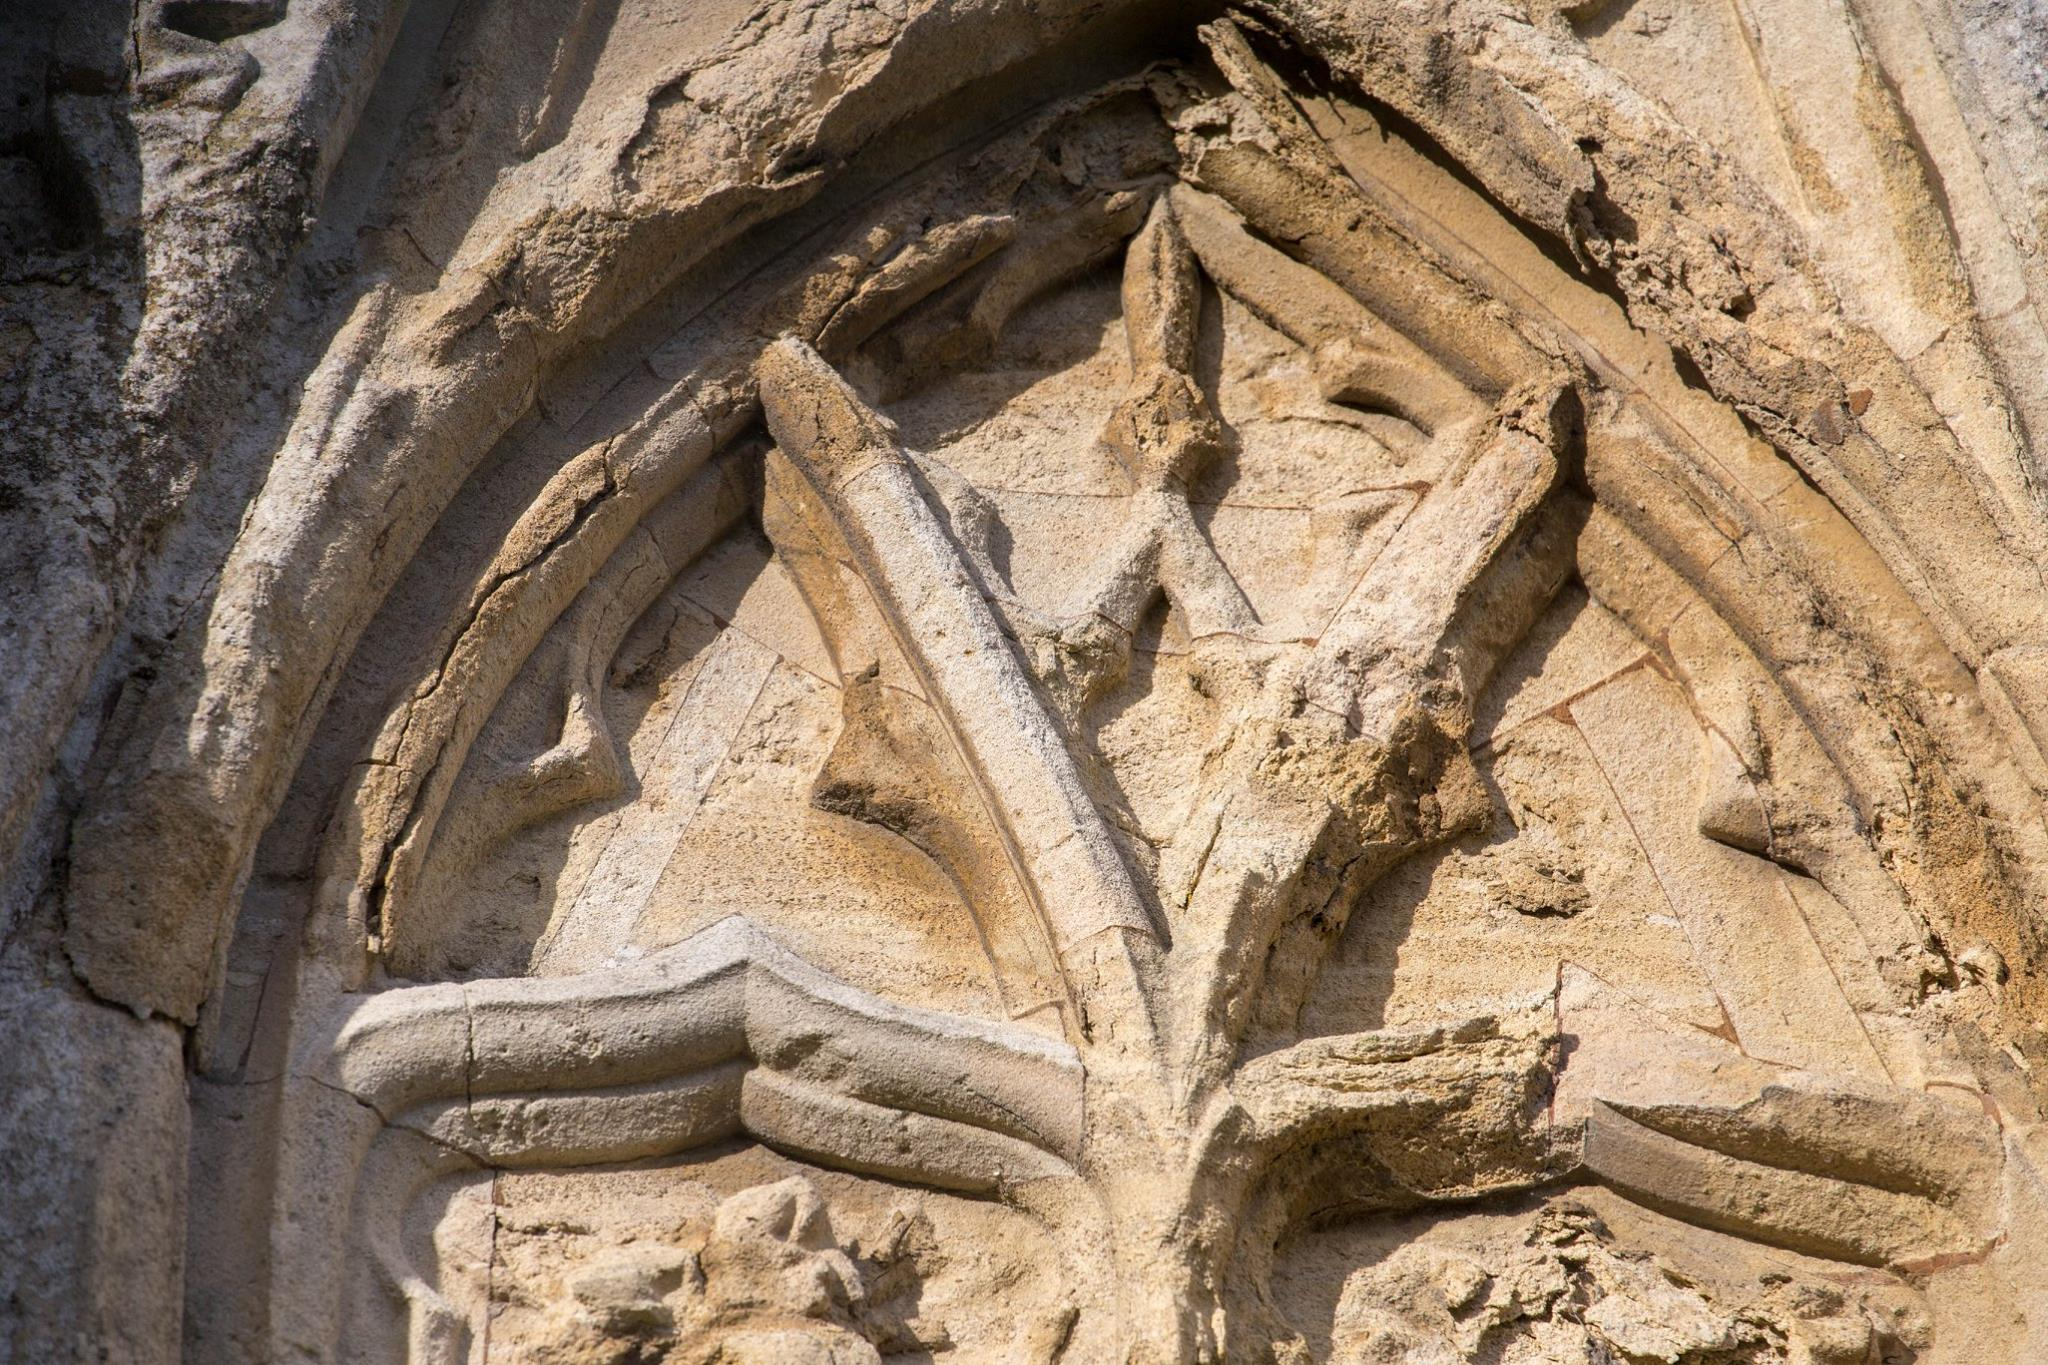 Cracking and flaking on the tracery of the Eleanor Cross copyright Mathew Lewis